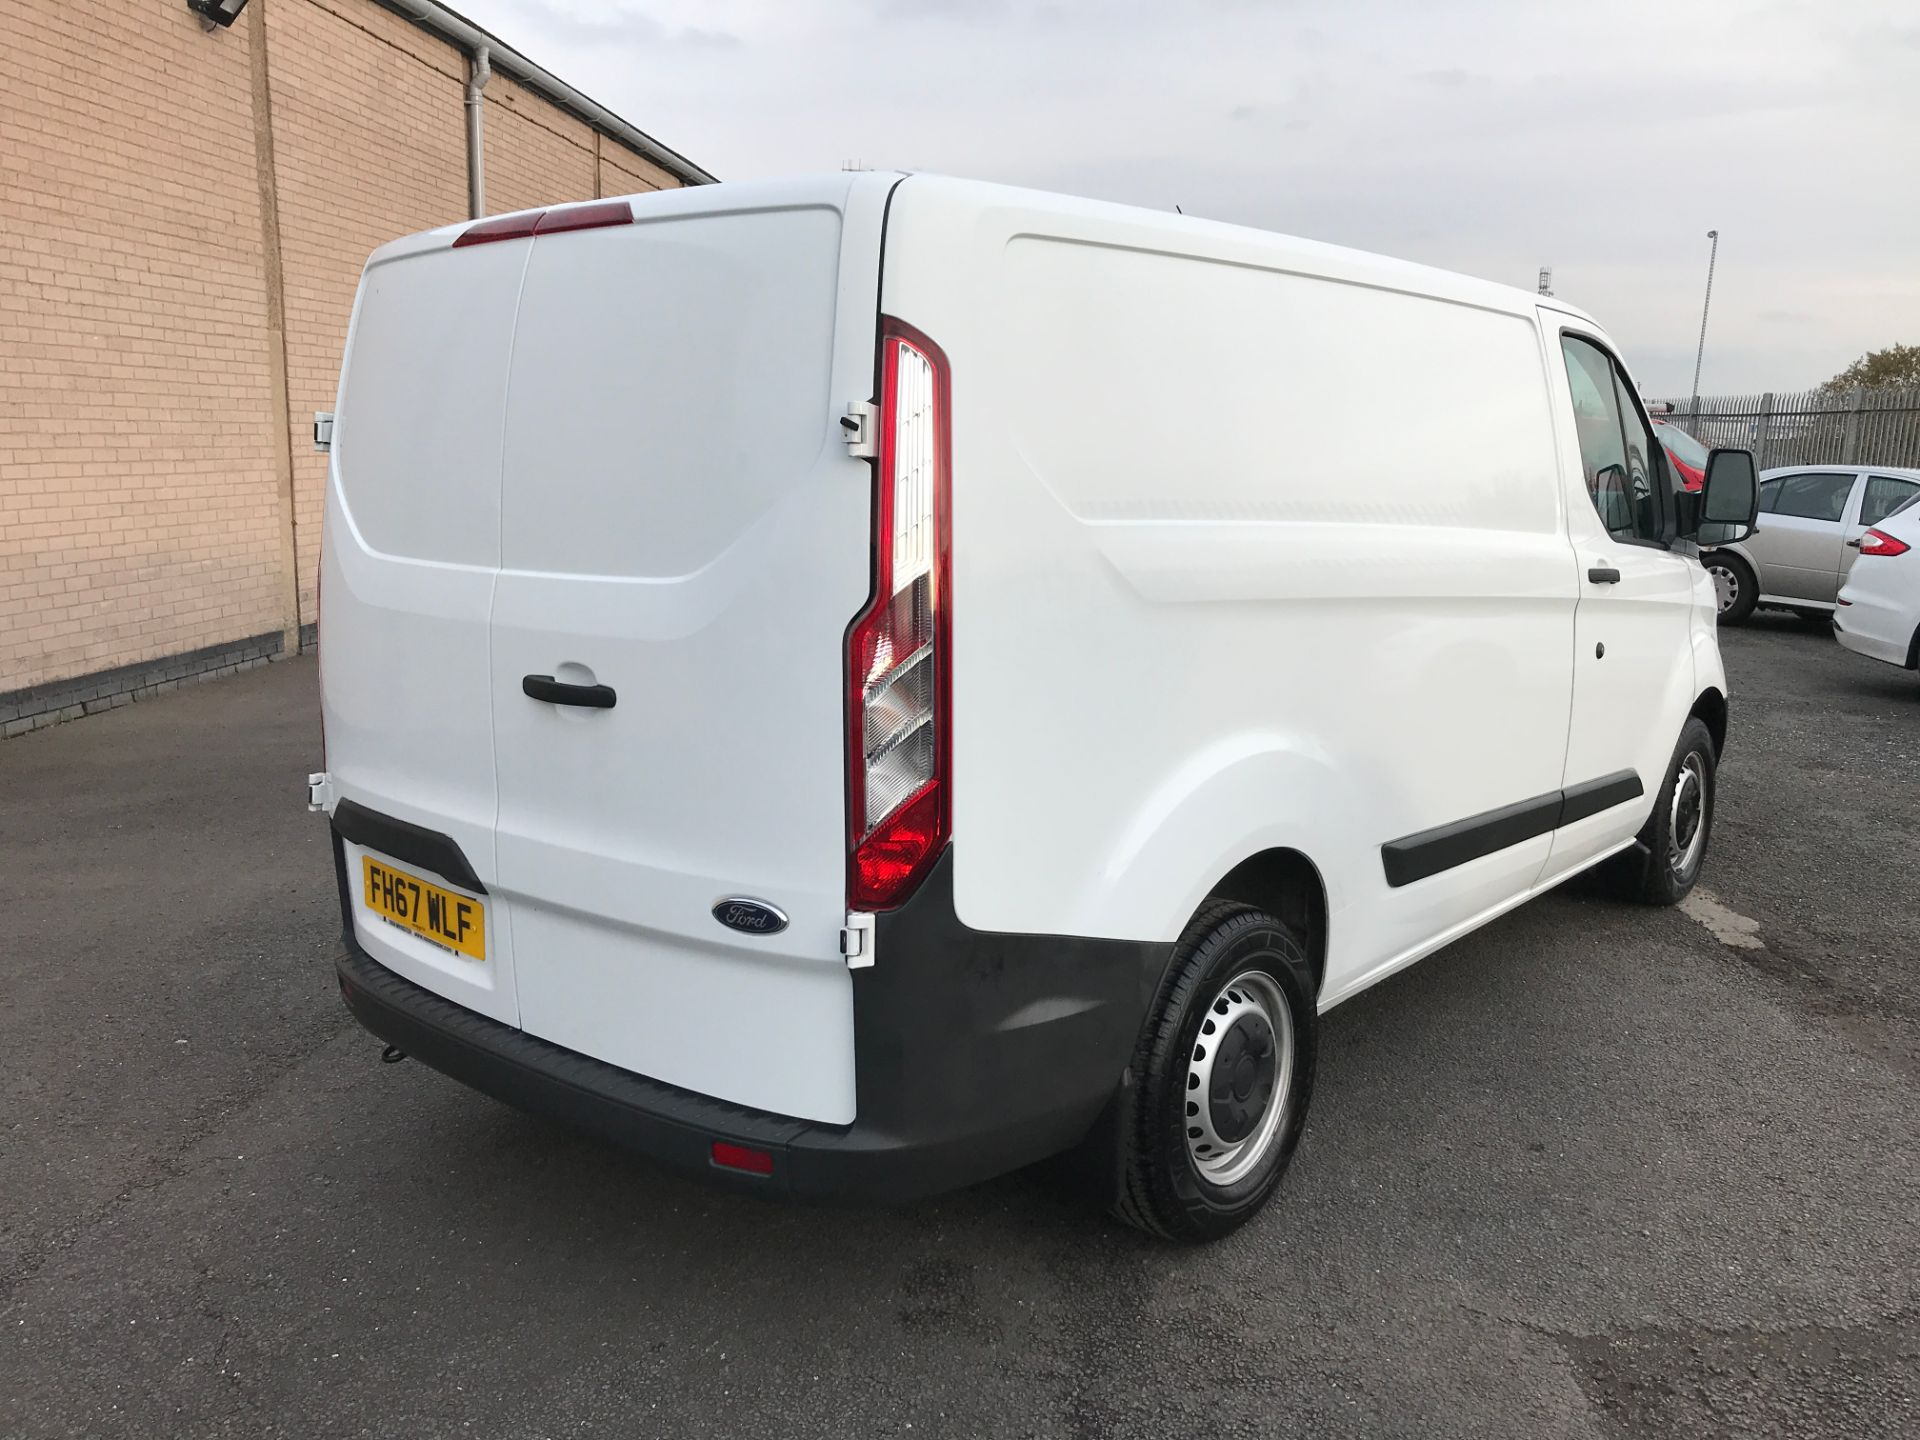 2018 Ford Transit Custom 290 L1 2.0TDCI 105PS LOW ROOF EURO 6 (FH67WLF) Image 8